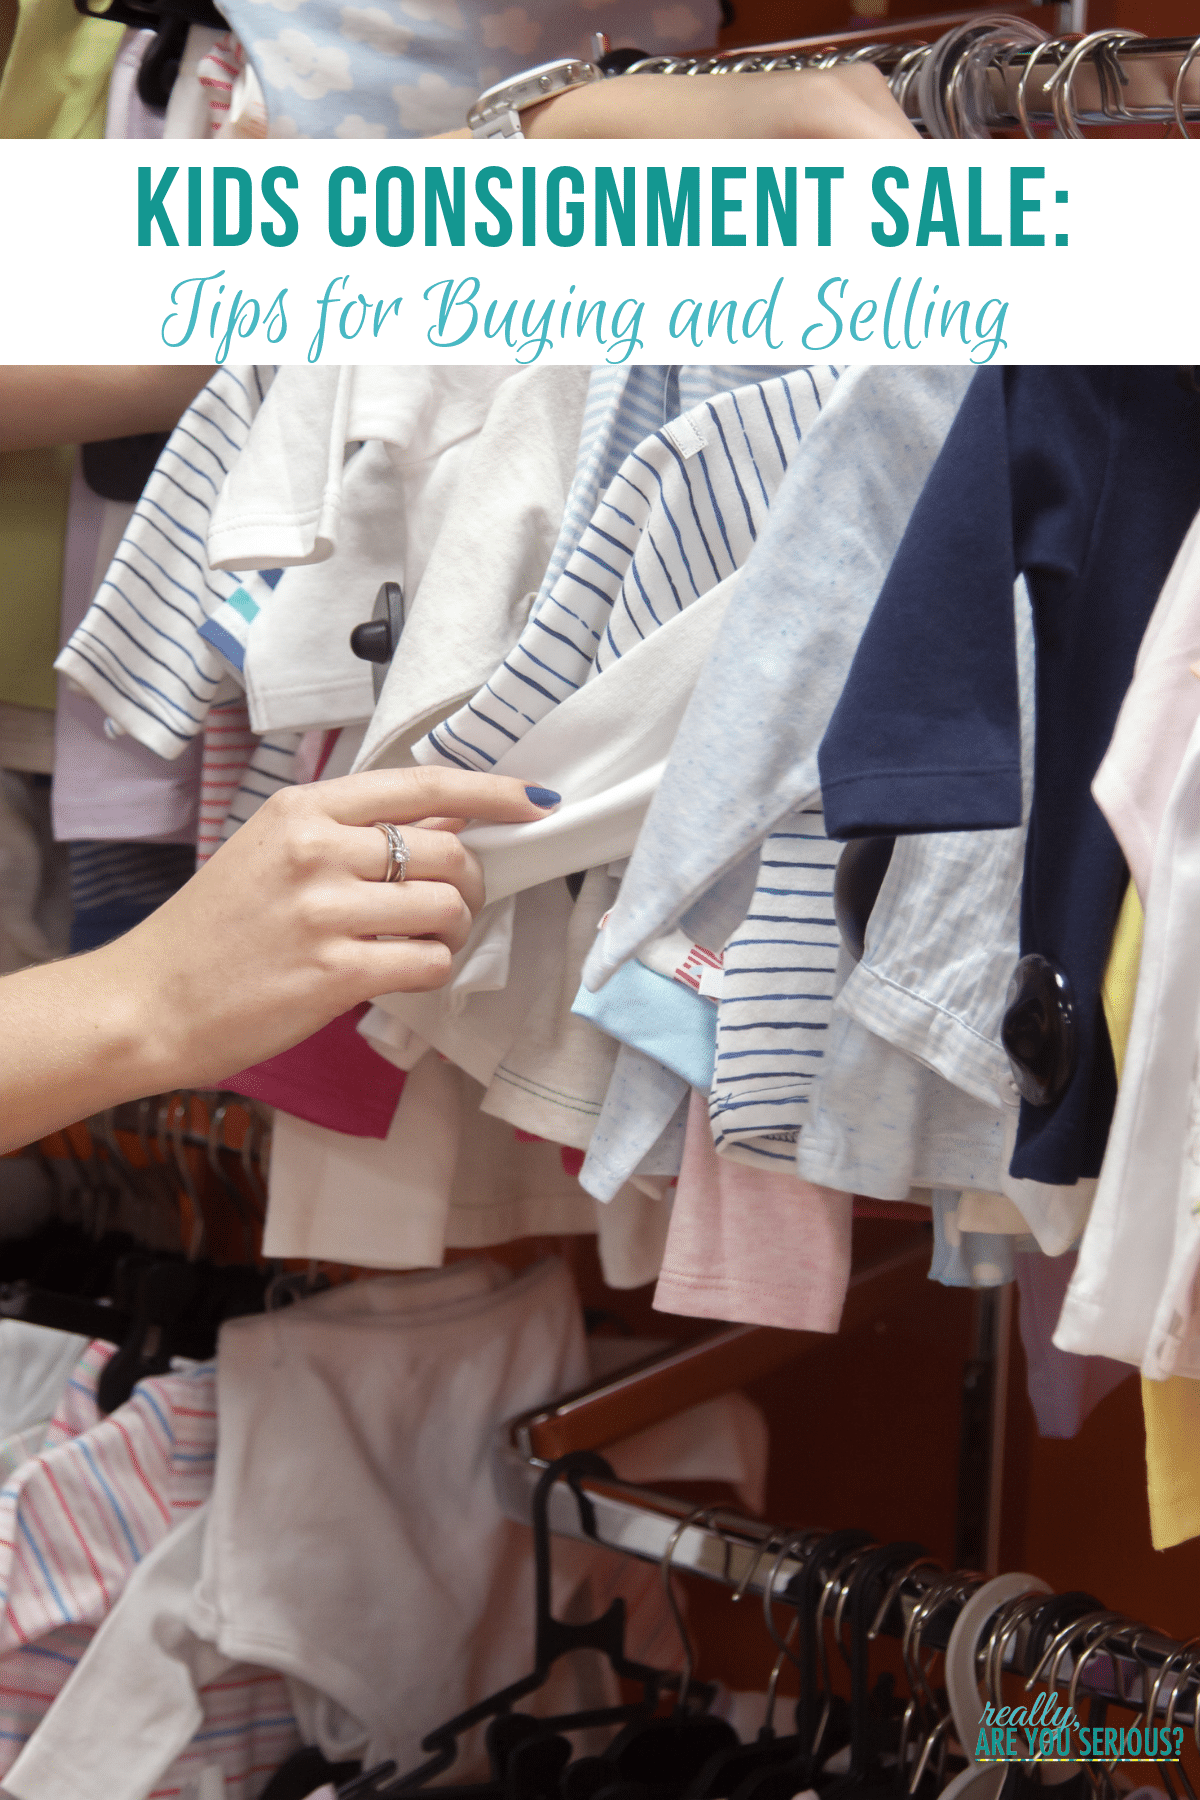 Kids Consignment Sale Tips for Buying and Selling